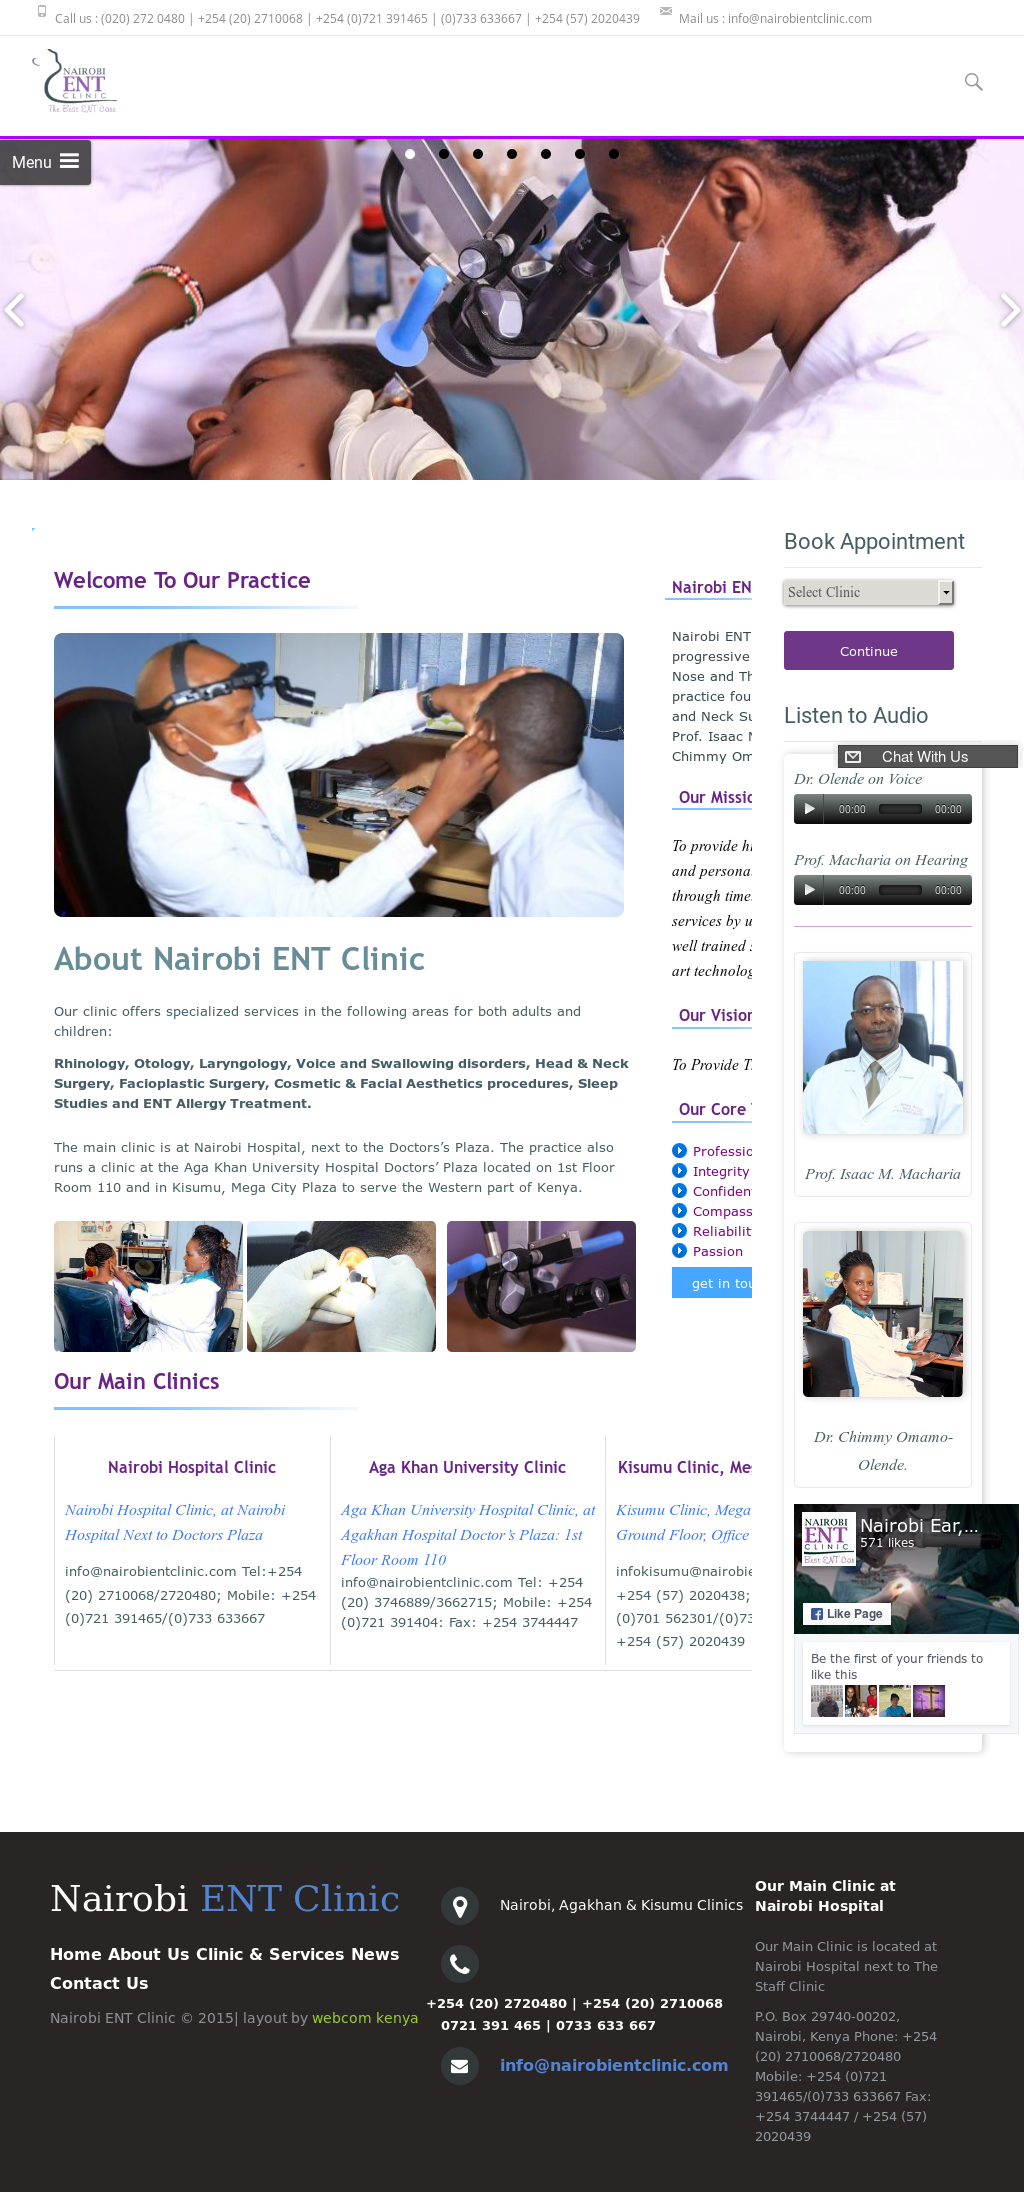 Nairobi Ent Clinic Competitors, Revenue and Employees - Owler